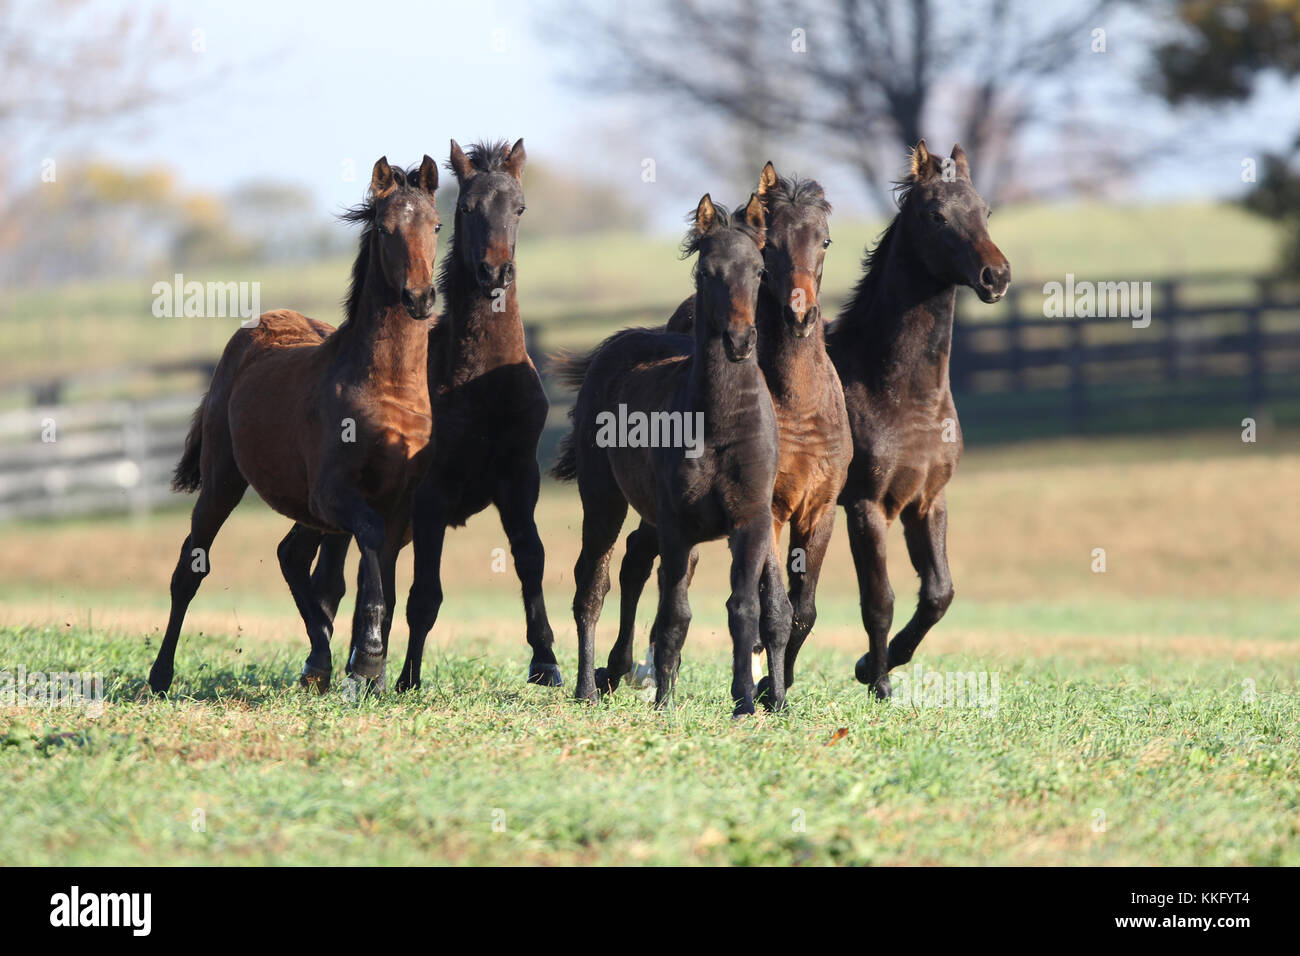 Morgan horse Stockbild